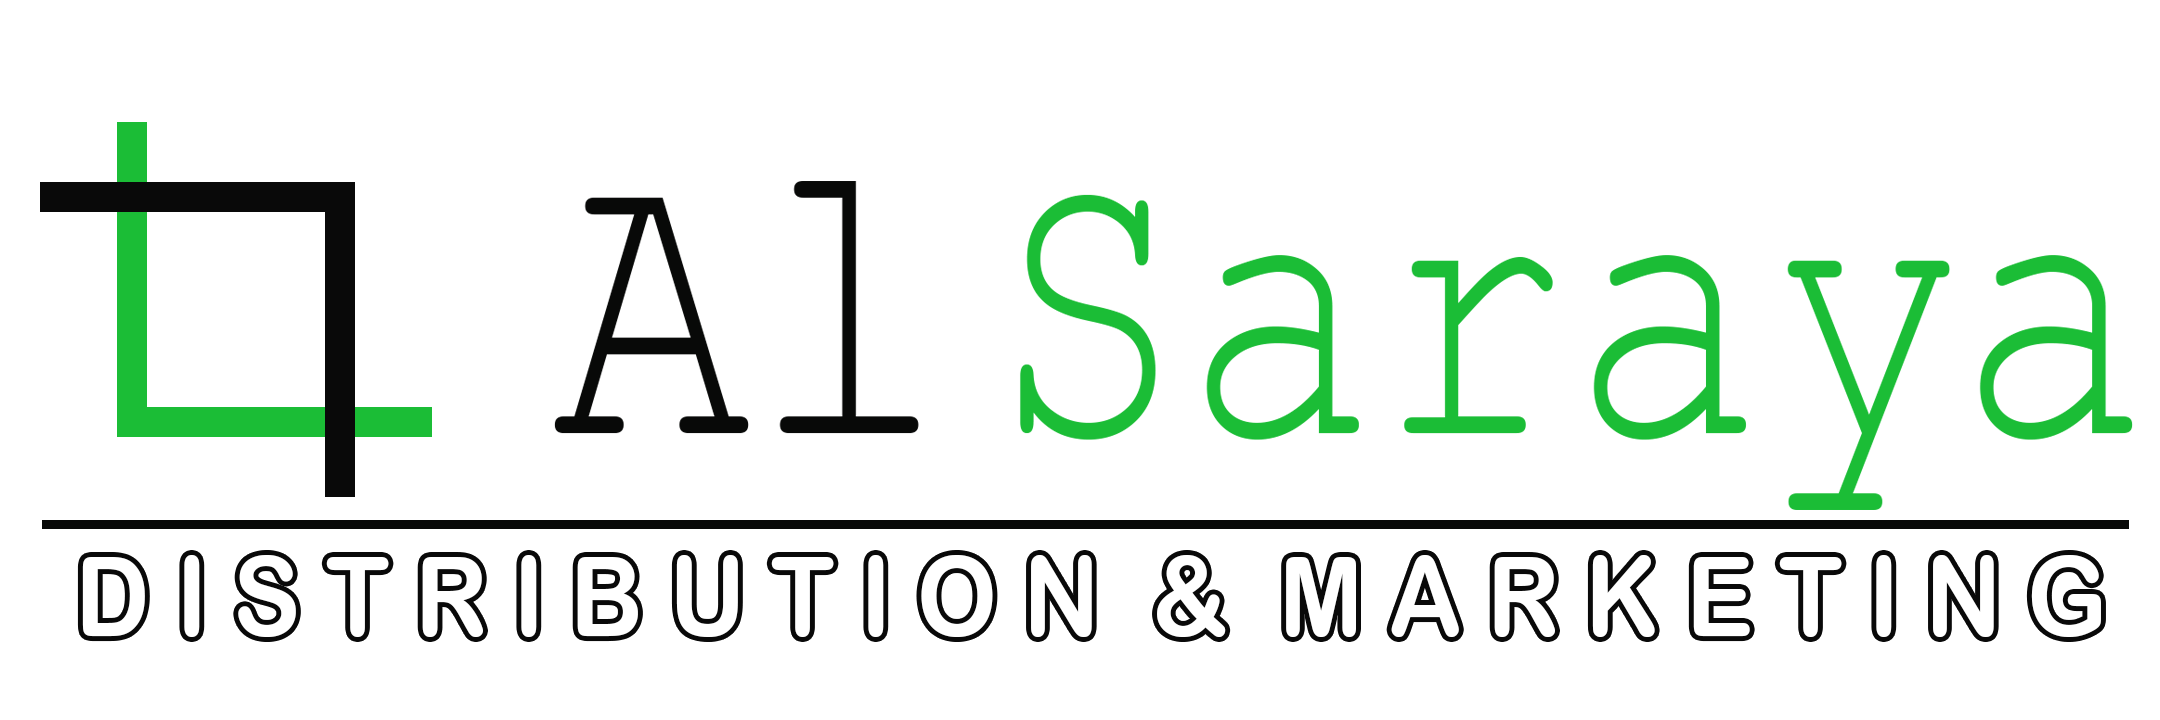 Al Saraya Distribution & Marketing